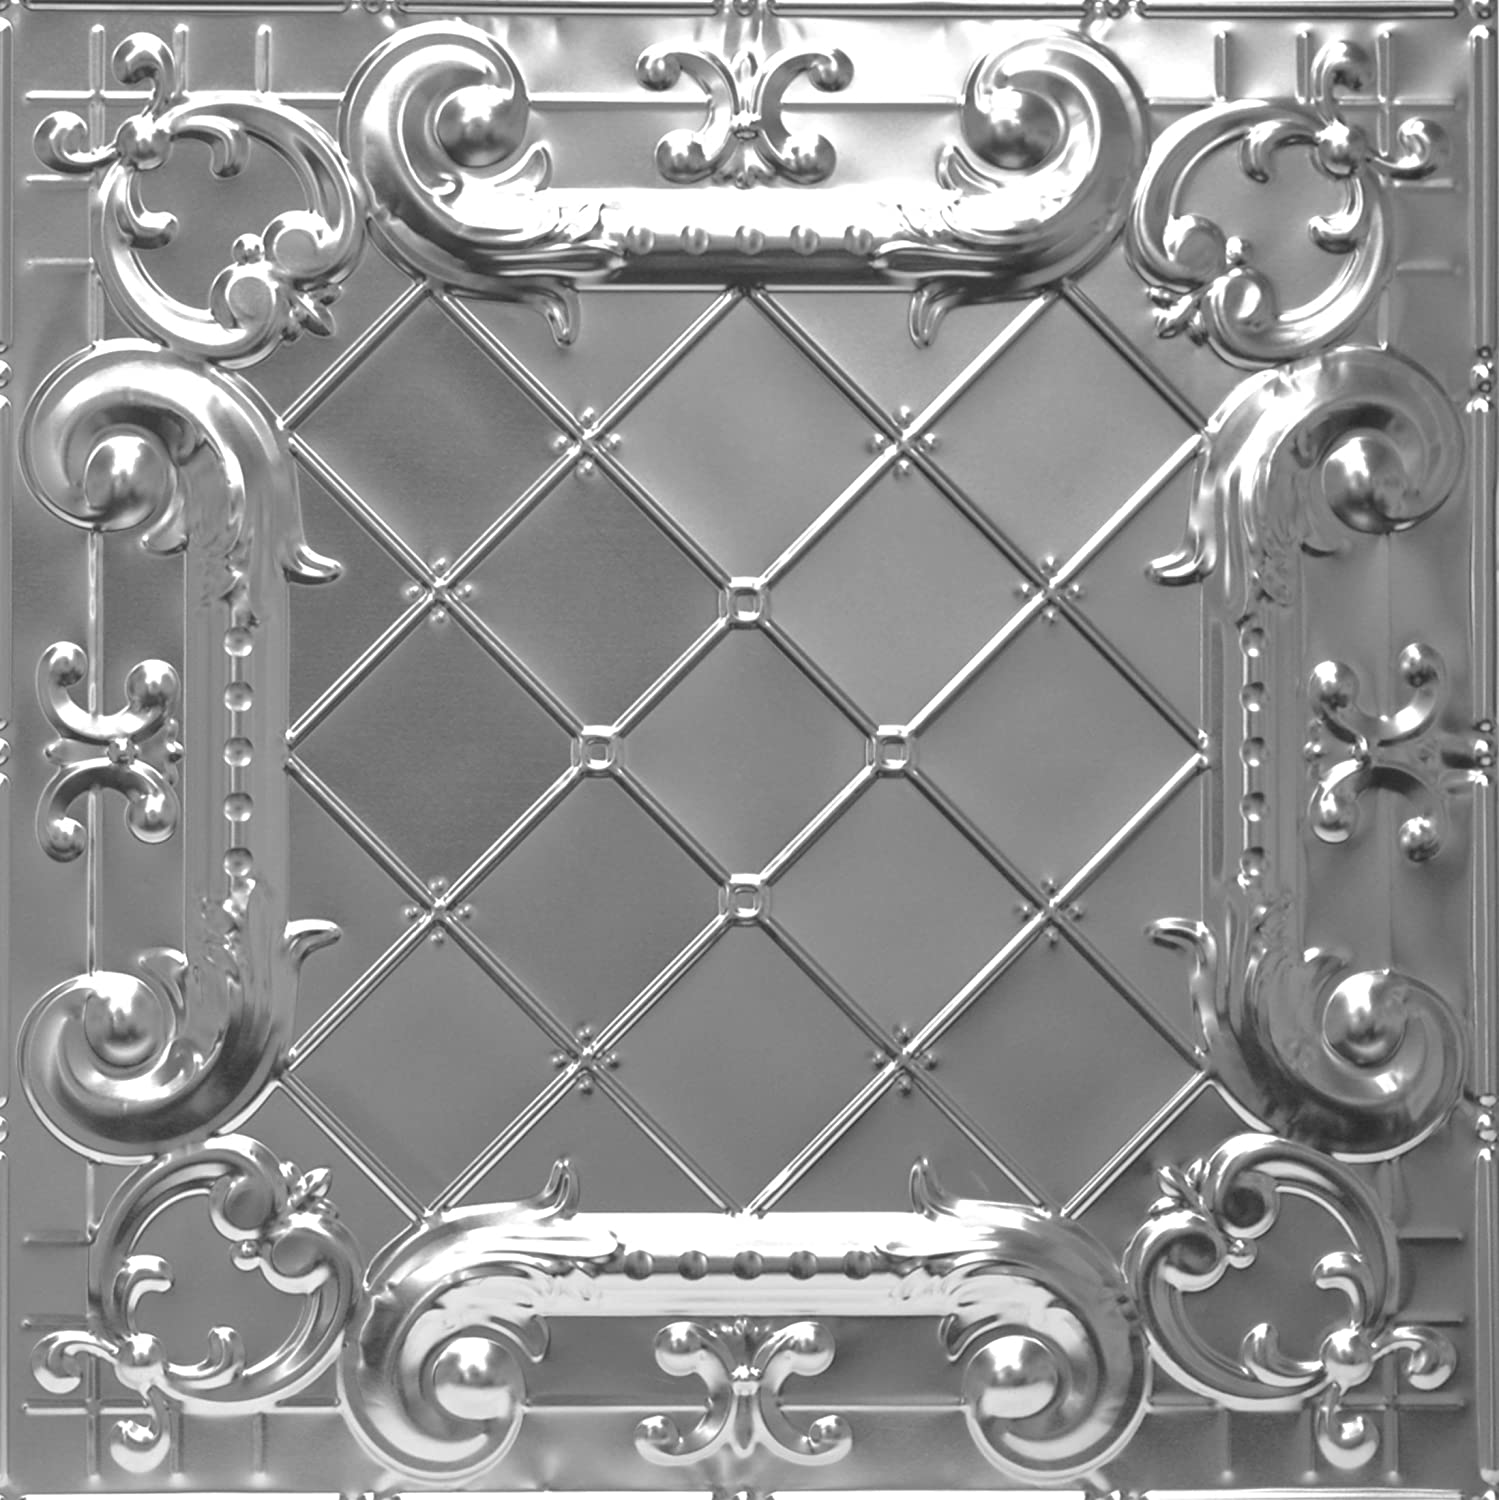 Shanko ST502LIG Pattern 502 Authentic Pressed Metal Lay-In Grid Ceiling Tiles, 20 sq. ft, Unfinished Steel Shanker Industries